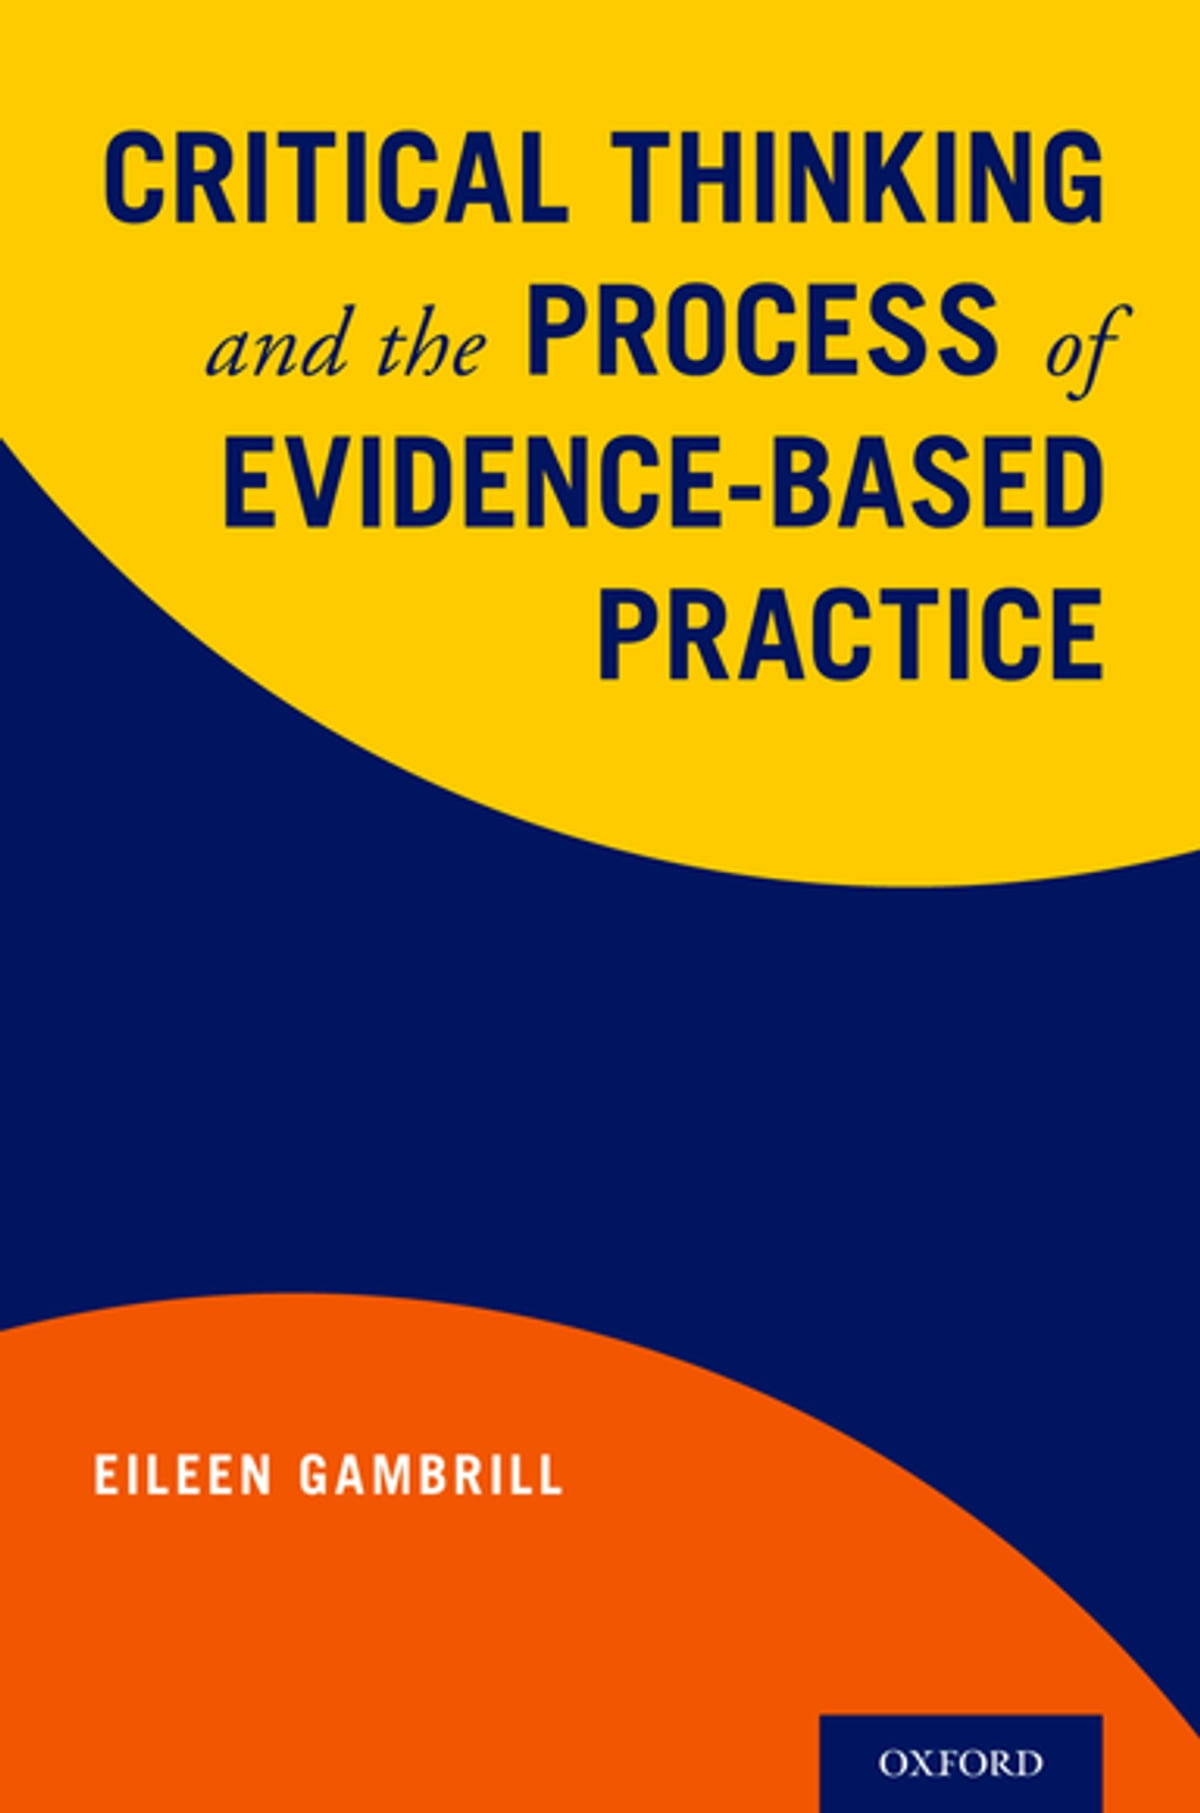 Critical Thinking and the Process of Evidence-Based Practice eBook by  Eileen Gambrill - 9780190463373 | Rakuten Kobo